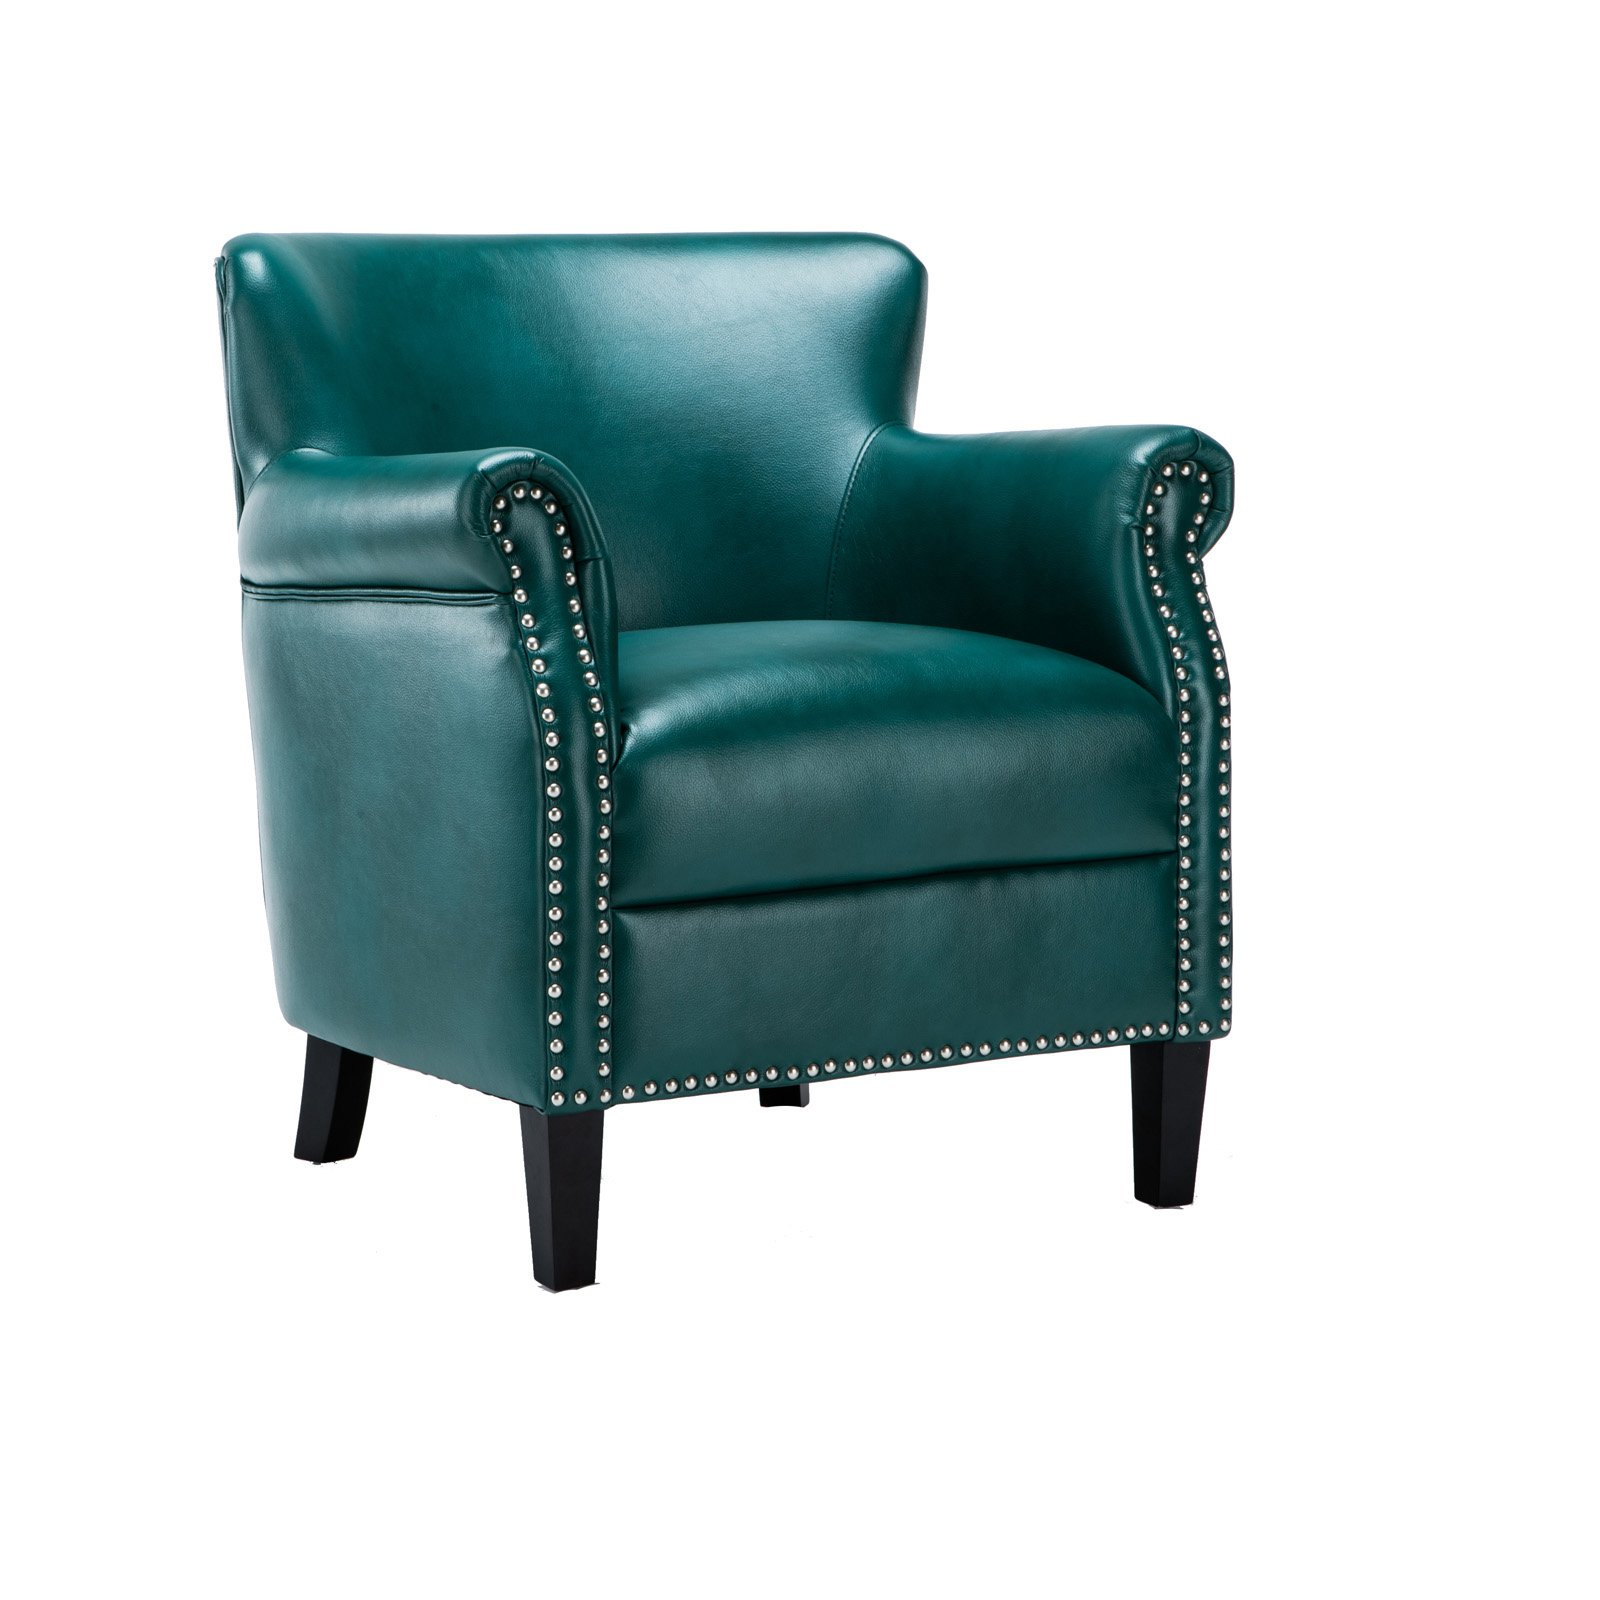 Comfort Pointe Holly Club Chair by Comfort Pointe